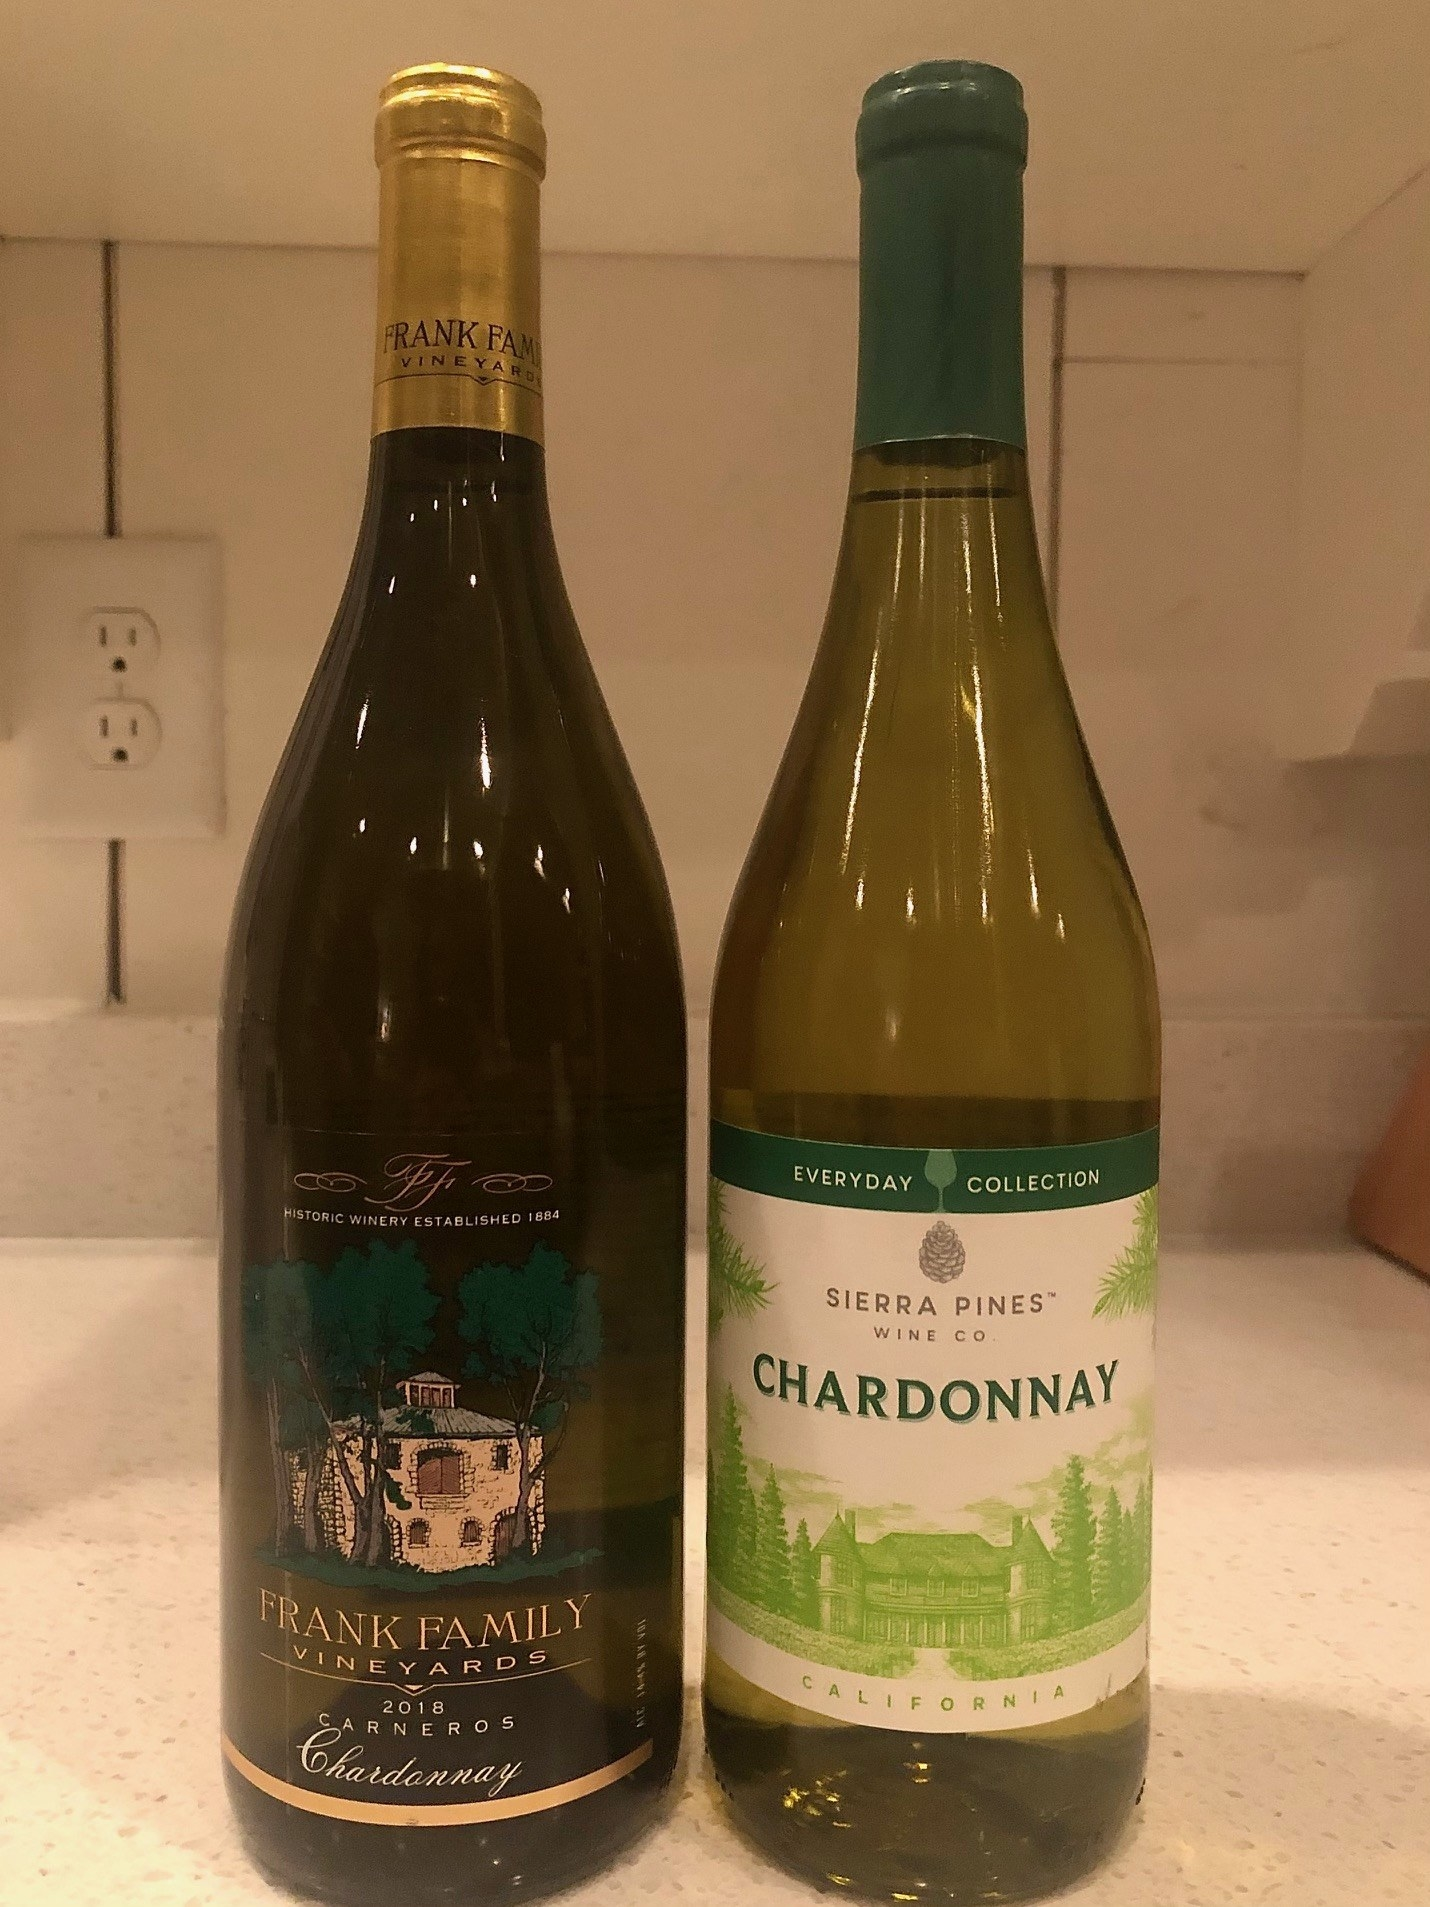 Two bottles of Chardonnay white wine